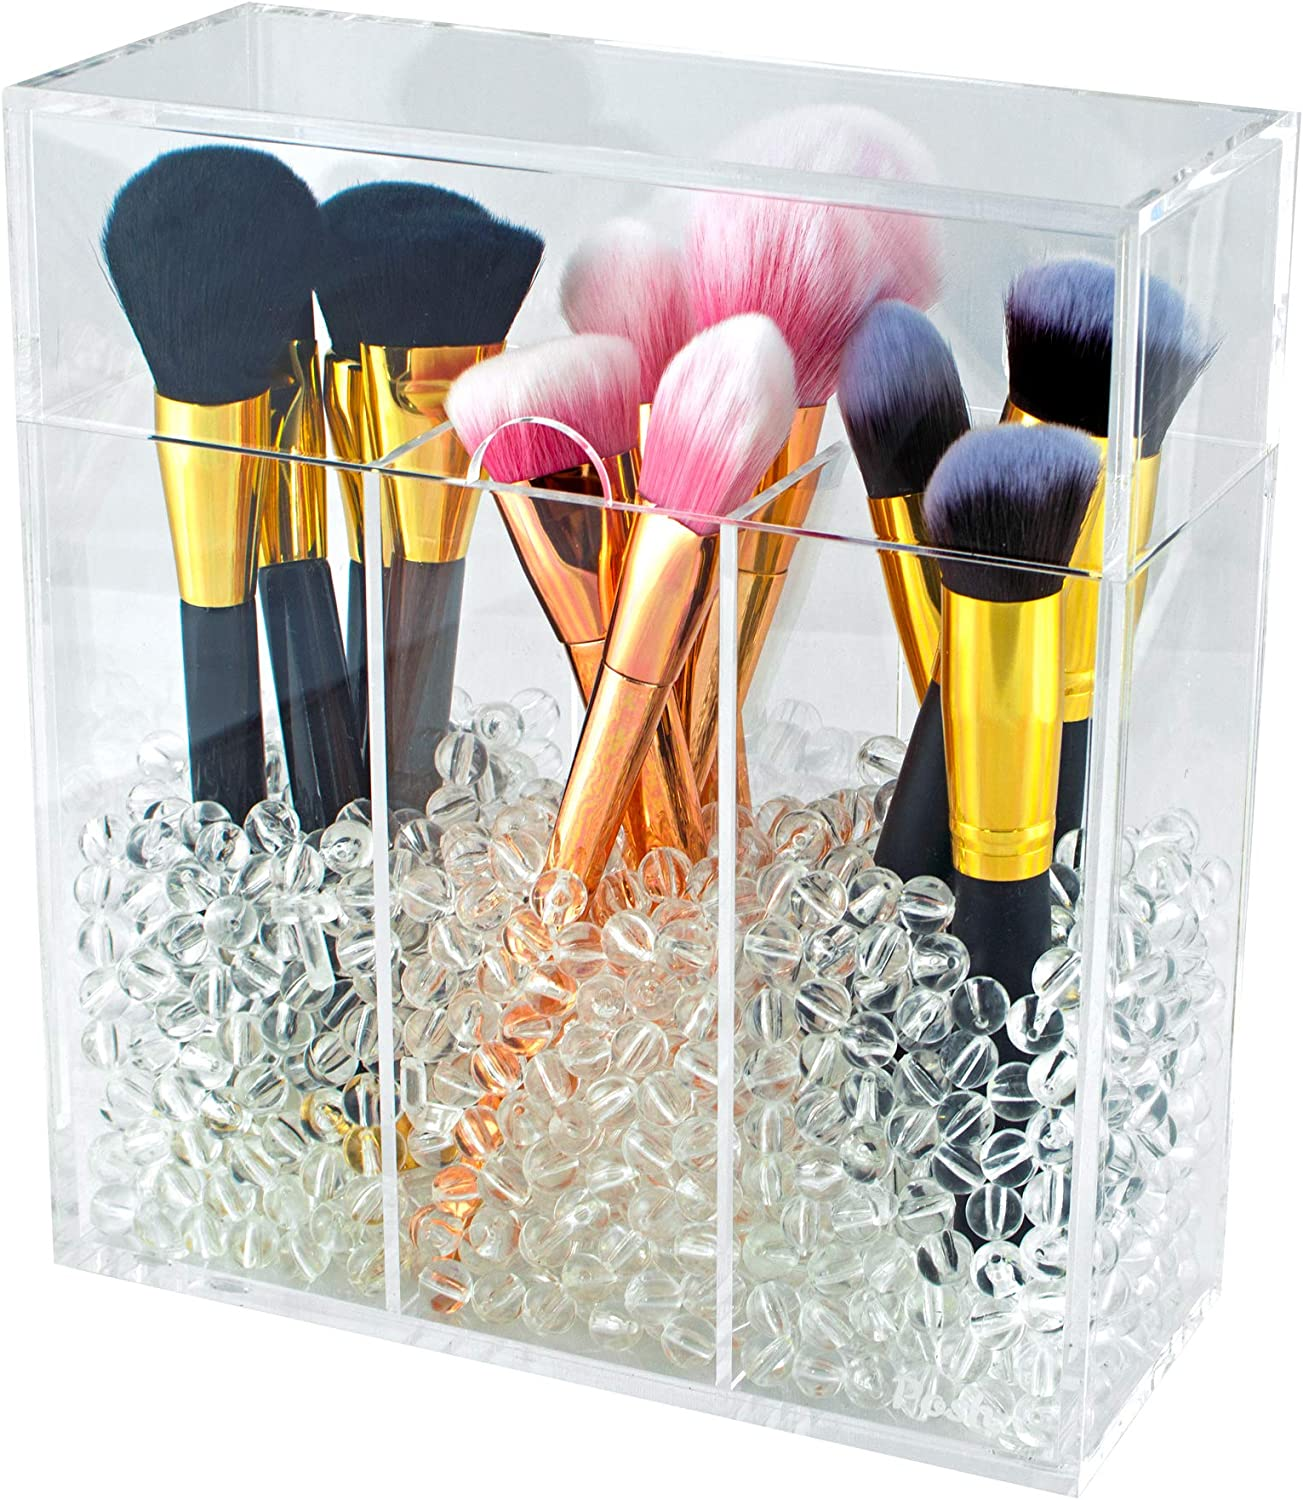 Makeup Brush Holder with Dustproof Top Lid - Large 3 Sections Organizer Case for Cosmetic Brushes - Acrylic Beads or Pearls Included